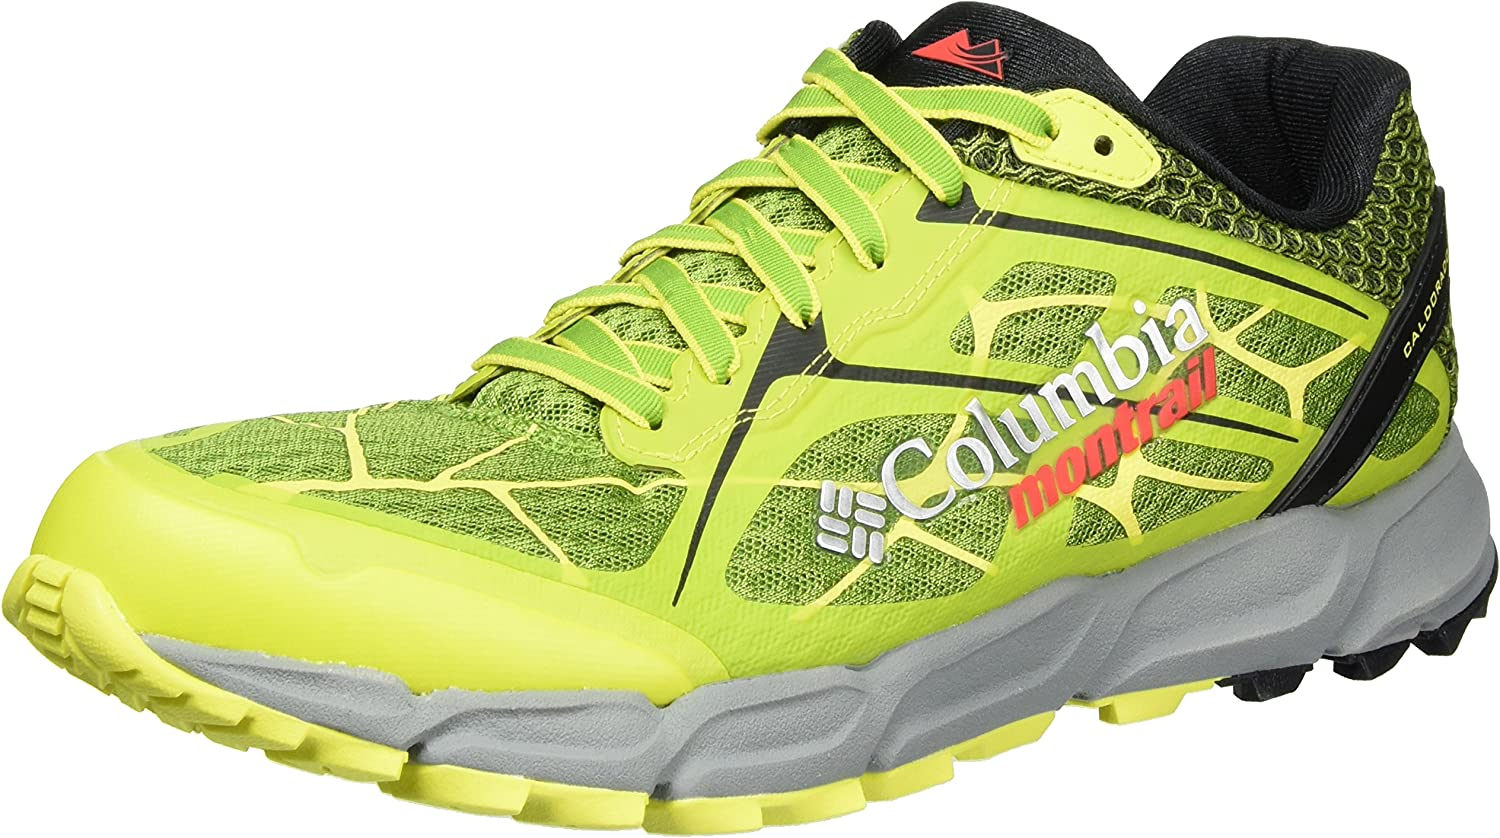 Columbia BM4571, Zapatillas de Running Hombre, Multicolor (New Leaf Green/Zour), 41.5 EU: Amazon.es: Zapatos y complementos